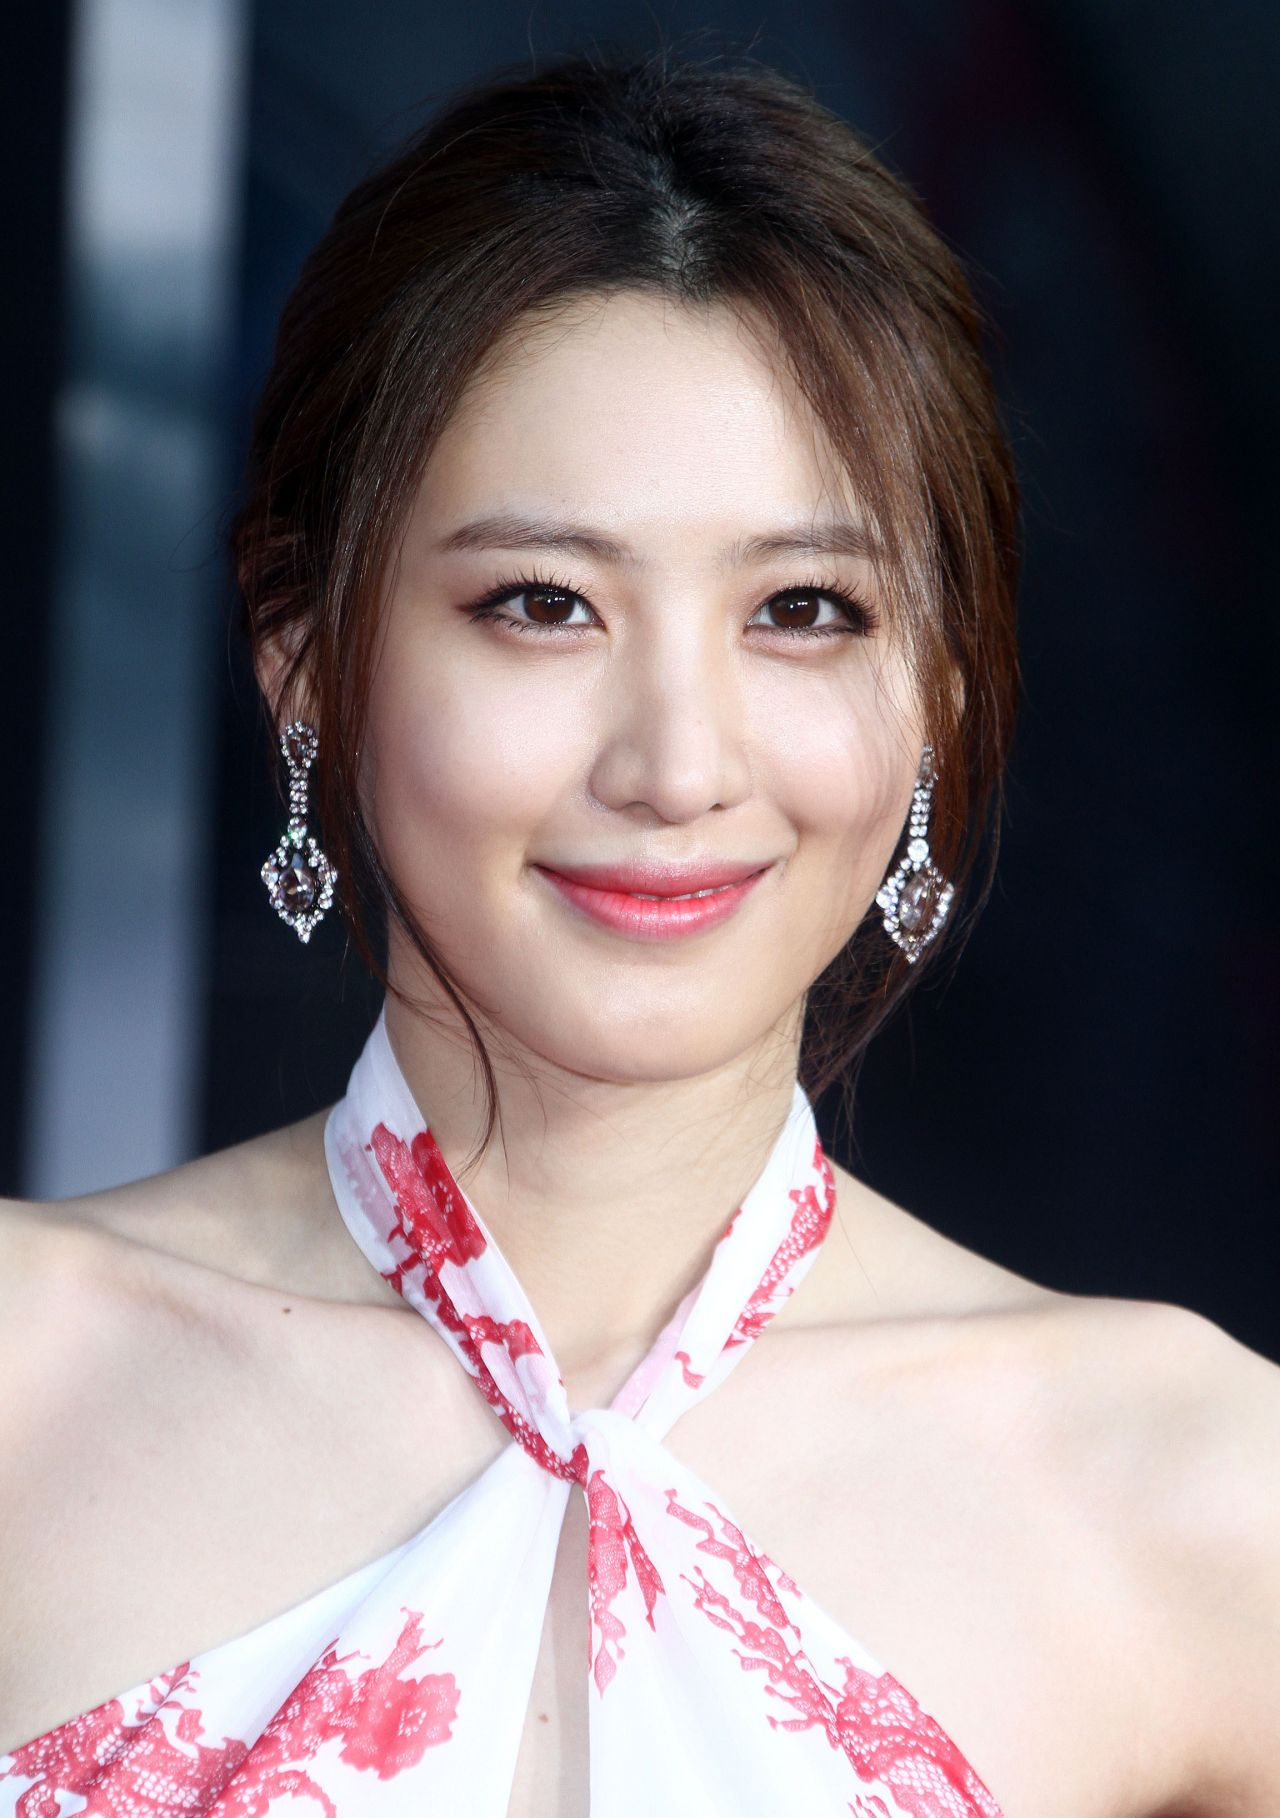 CLAUDIA KIM Latest Photos - CelebMafia